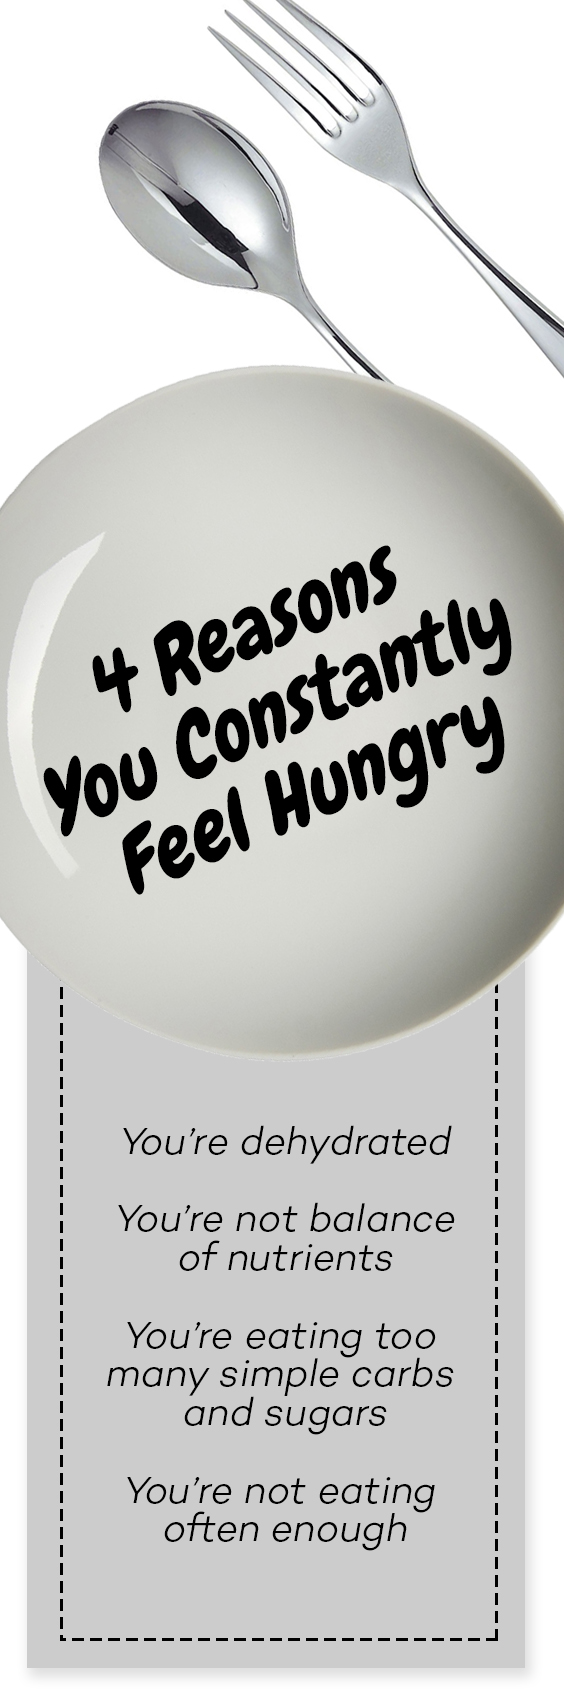 4-reasons-you-constantly-feel-hungry